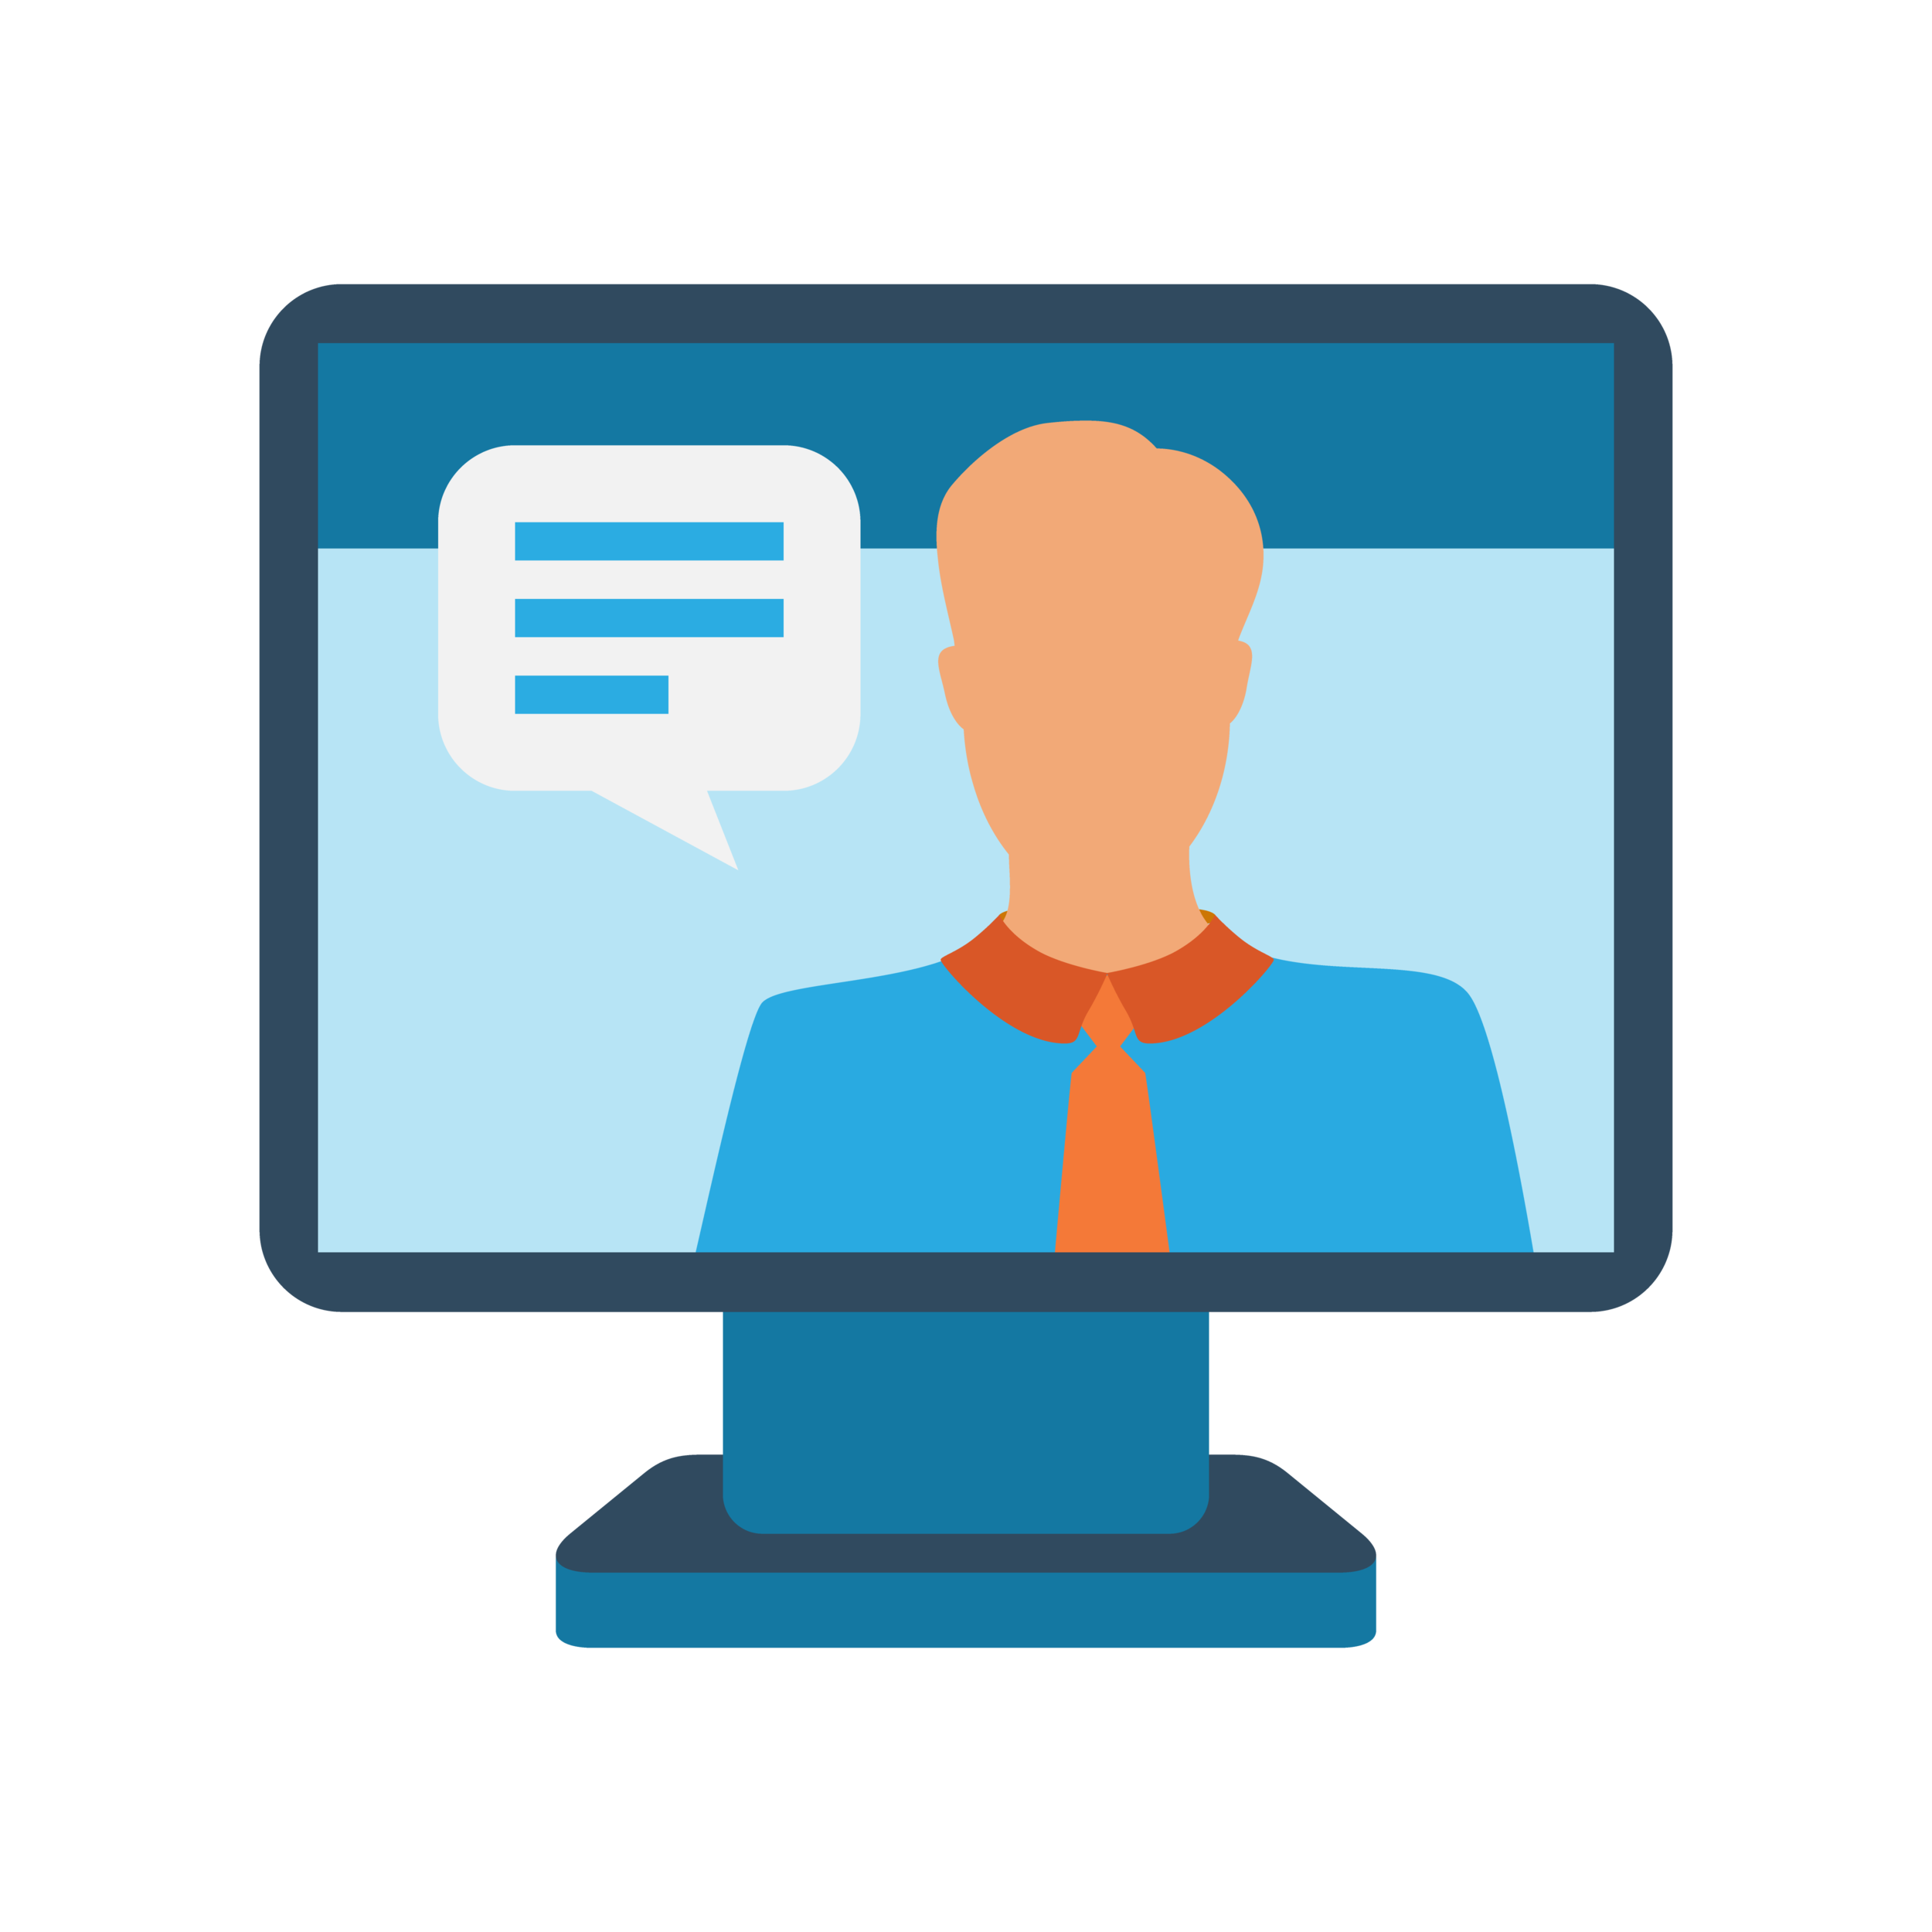 Illustration of a person on a computer monitor, which represents Bezlio webinars where our engineering team walks you through how to use Bezlio to display dashboards, mobilize any internal data, write back to your data sources and create beautiful data visualizations.